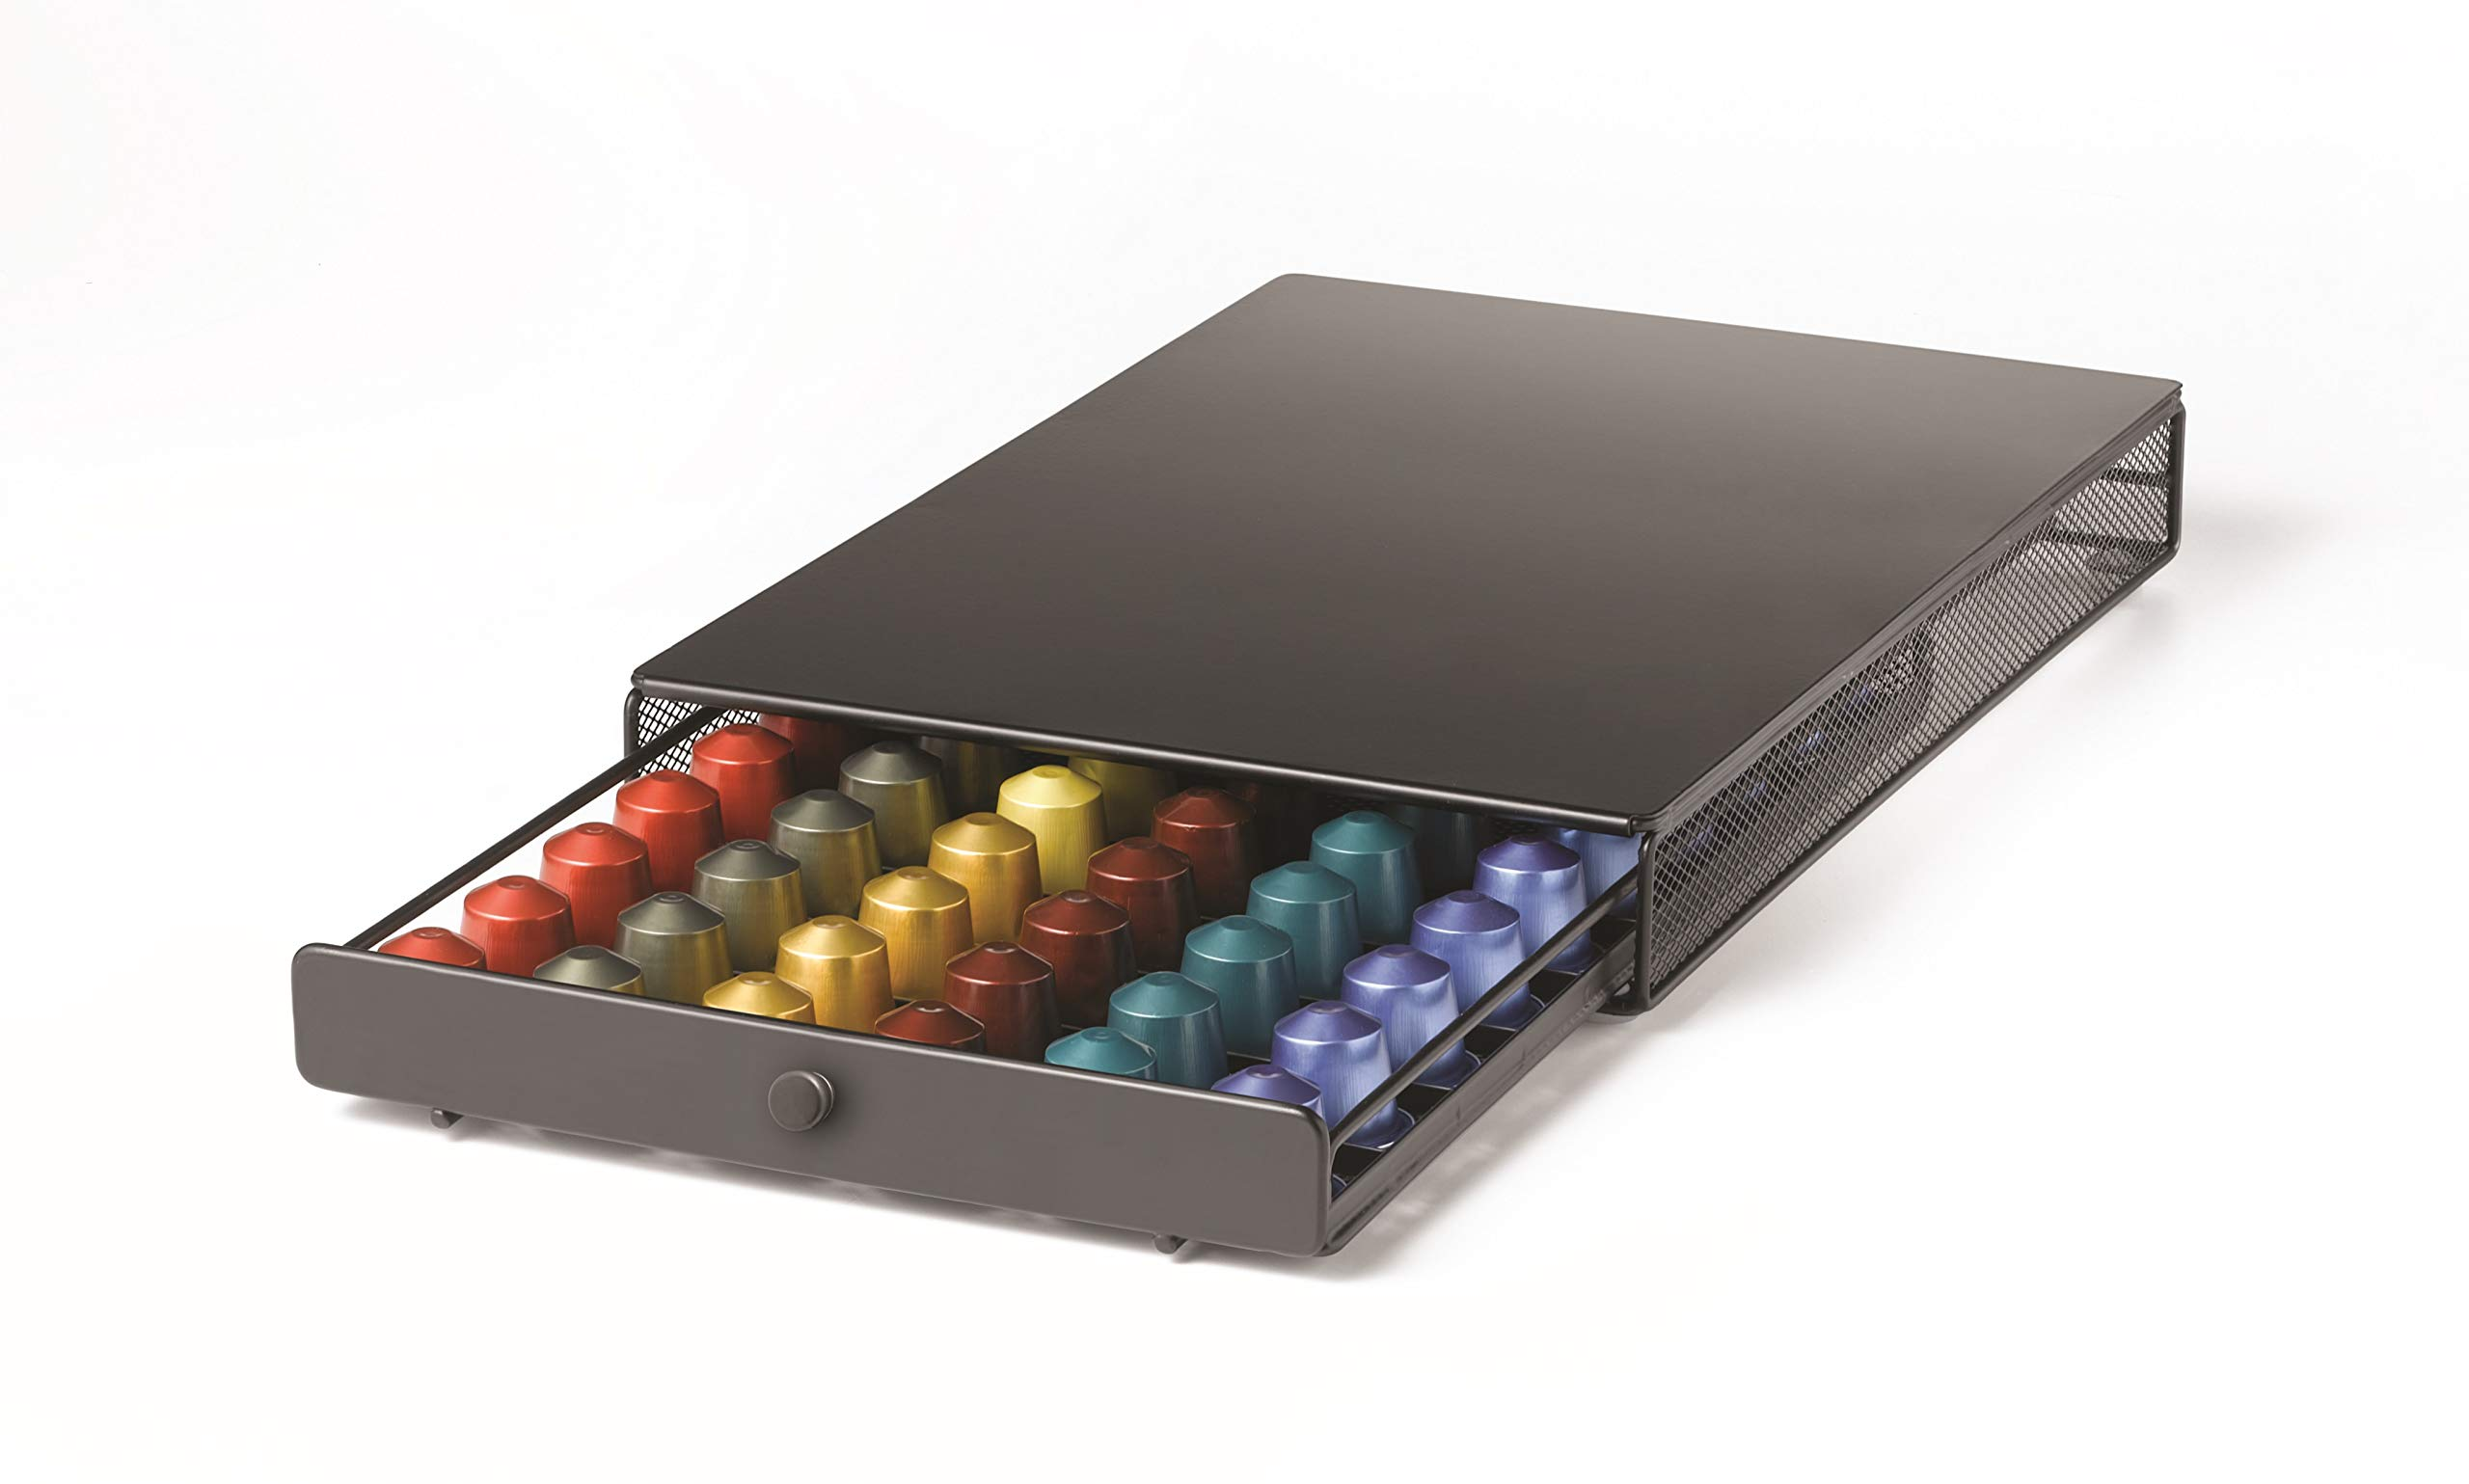 Nifty Nespresso Capsule Drawer - Holds 60 Nespresso Capsules by NIFTY